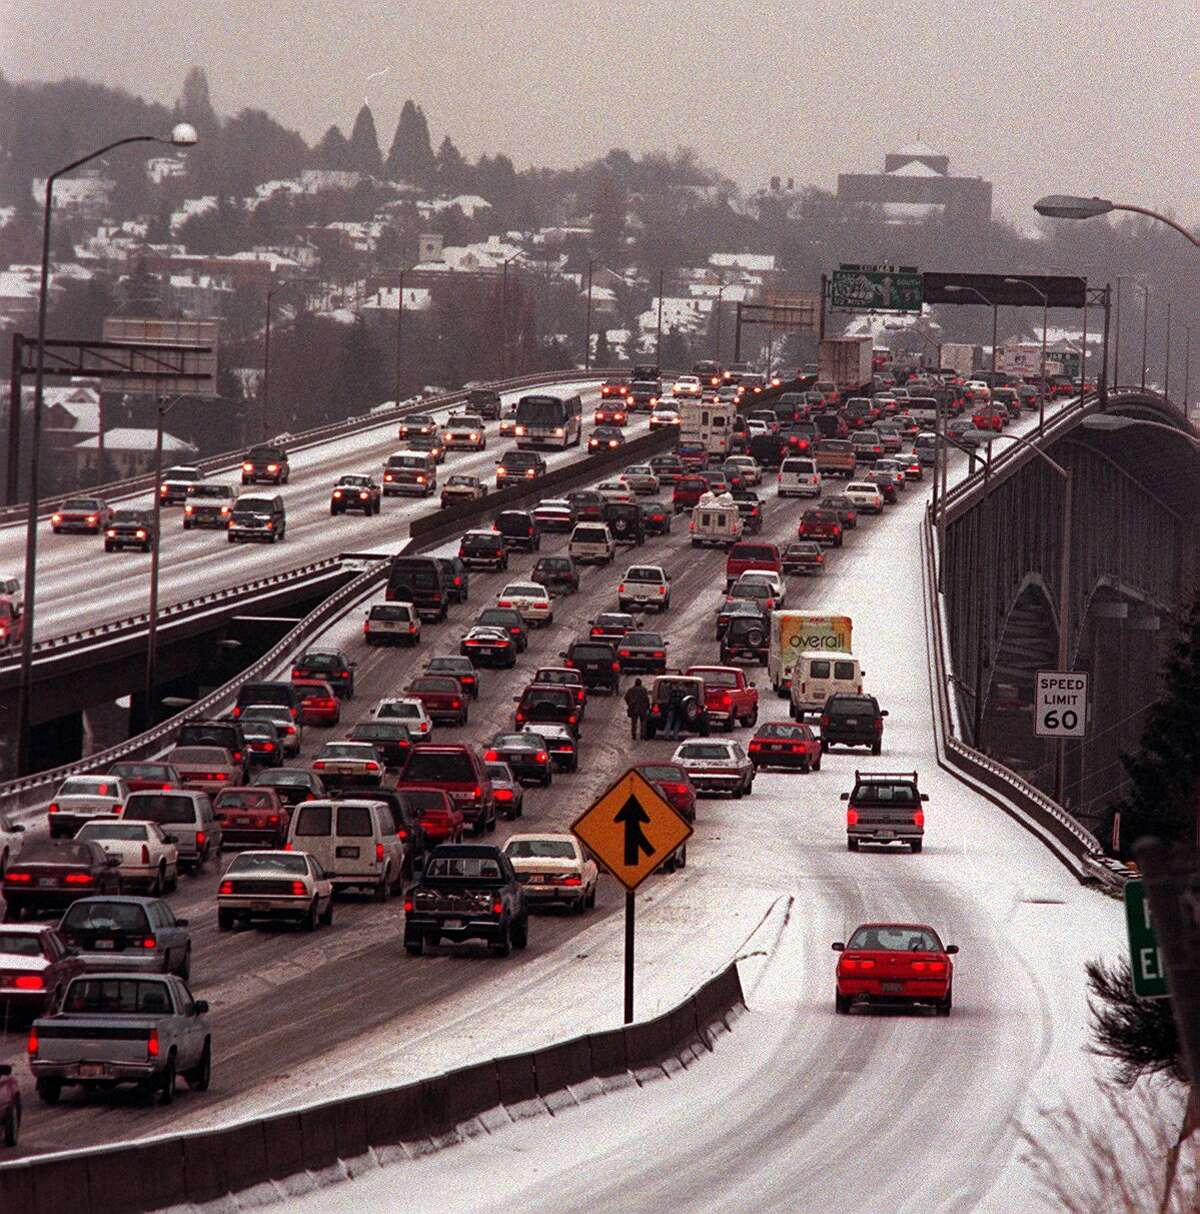 We leave work early, thus starting rush hour gridlock at 2 p.m. ... arriving at home about the same time as normal.